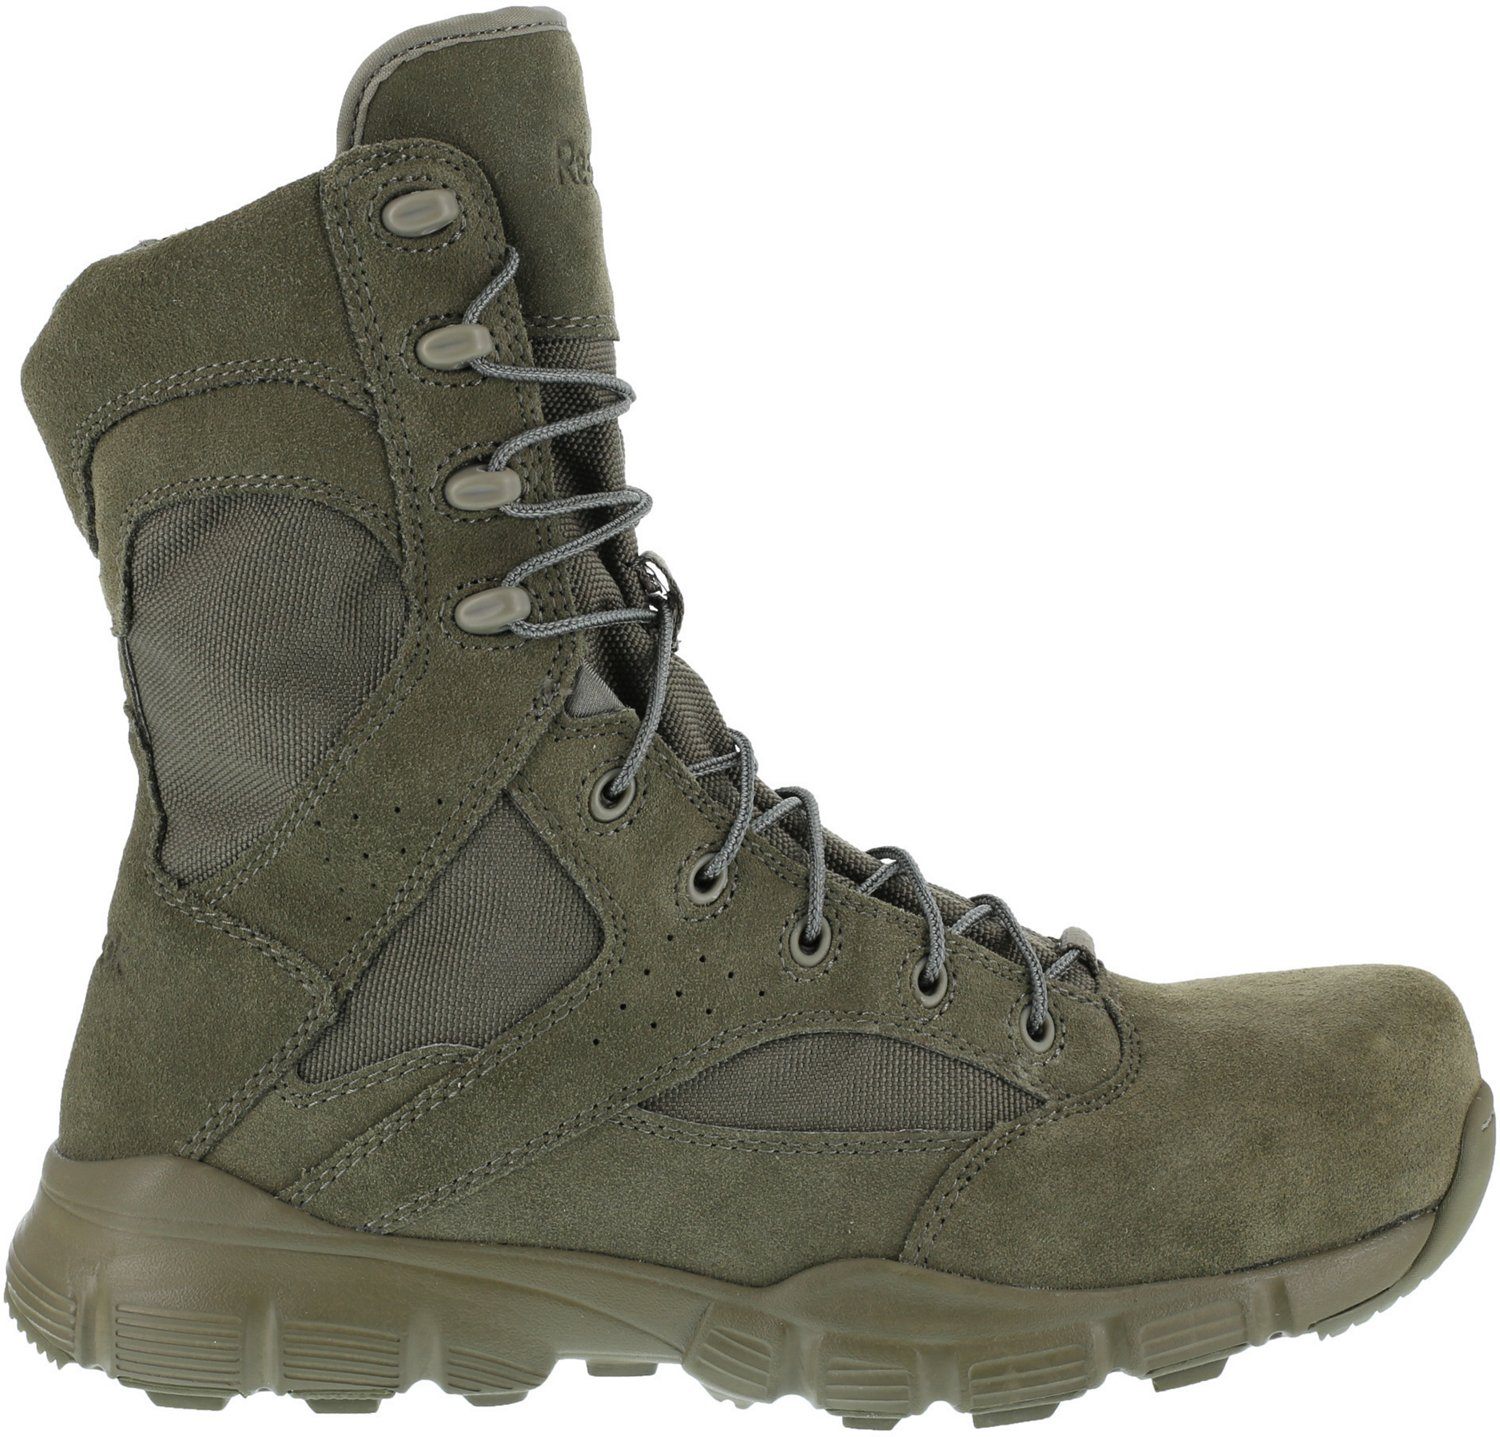 ea10e142feb Display product reviews for Reebok Men s Dauntless Air Force 8 in Composite  Toe Tactical Work Boots